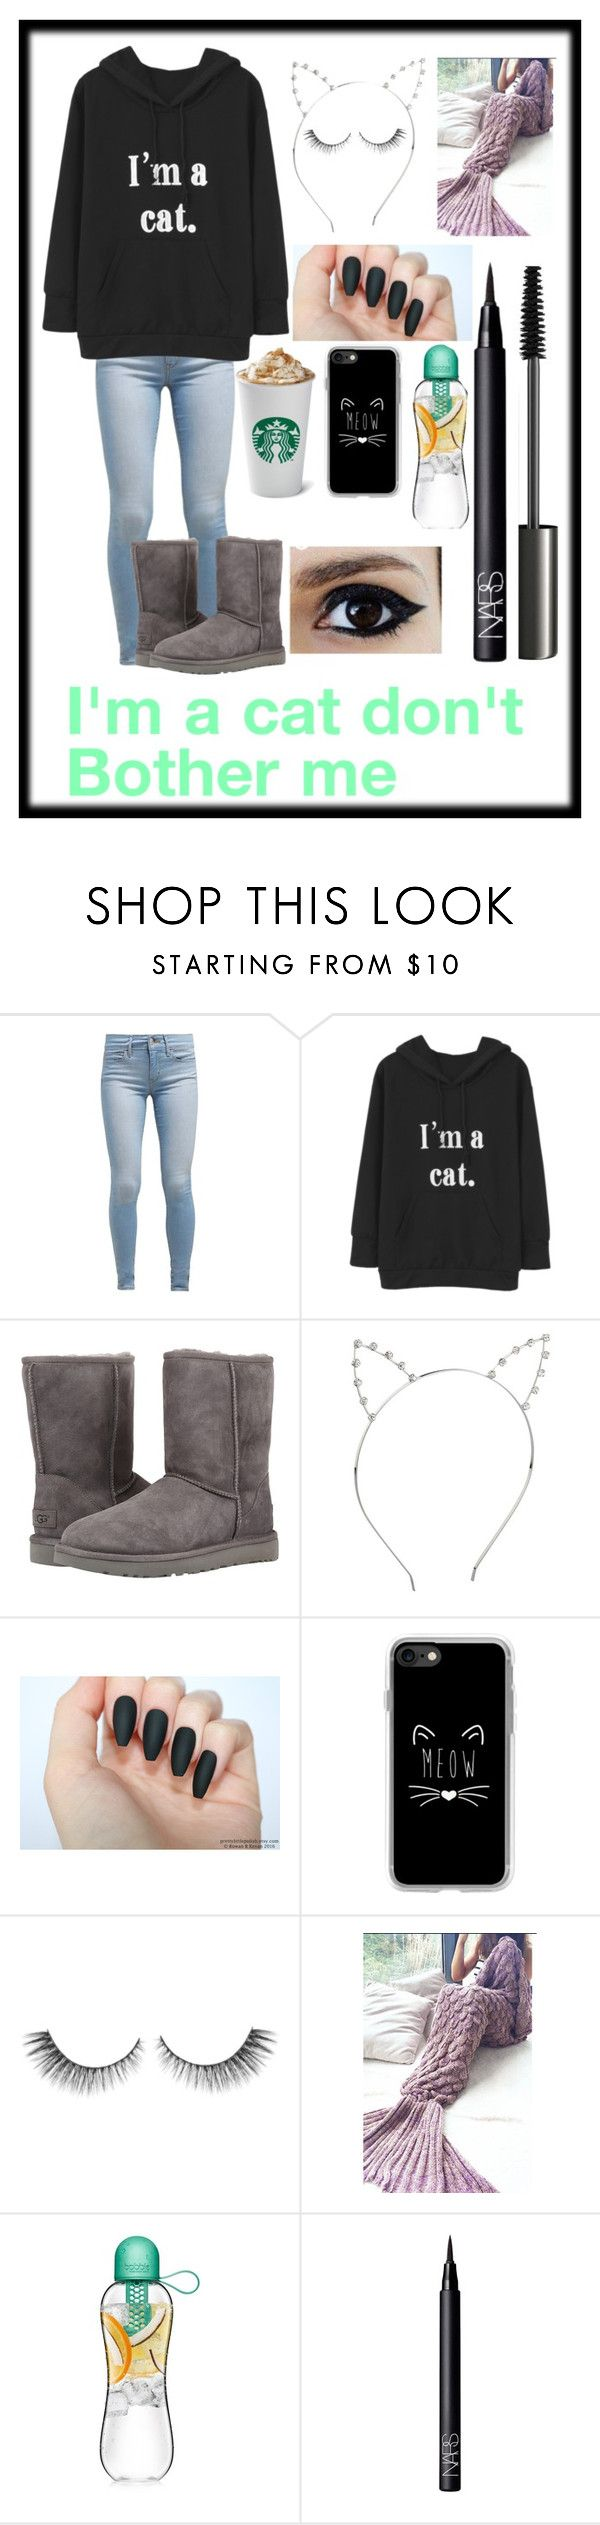 """I'm a cat go away🐱"" by sonjakolecki ❤ liked on Polyvore featuring Levi's, UGG Australia, Casetify, NARS Cosmetics and MAC Cosmetics"